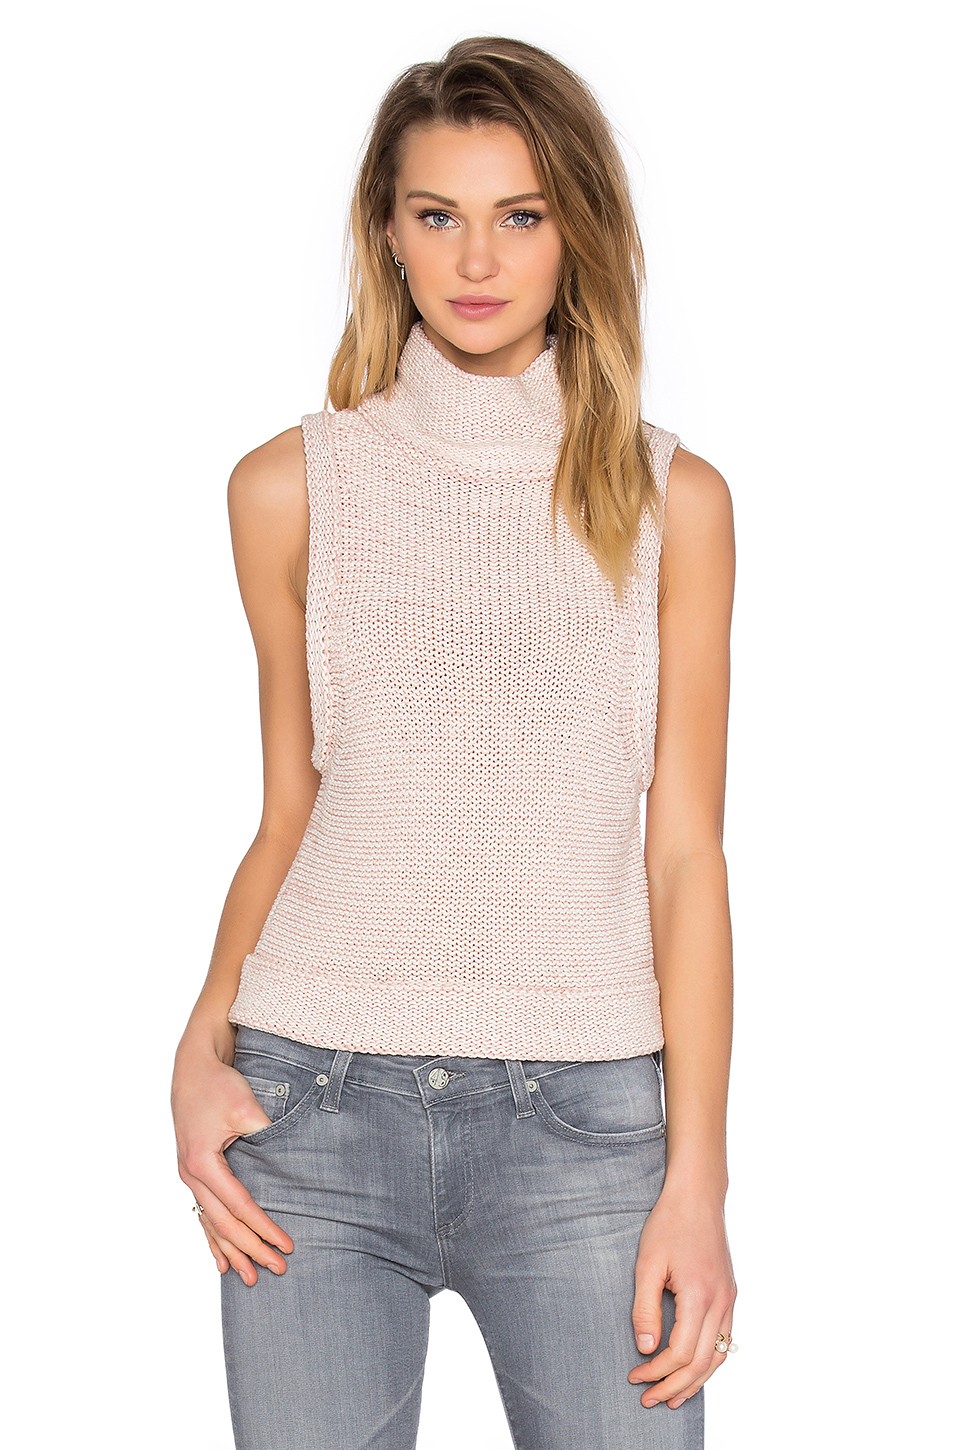 When the brutal cold of deep winter really sets in, more than one top is the secret to survival. The least bulky combo? A sleek turtleneck bodysuit with sleeveless crewneck on top, for a cozy.